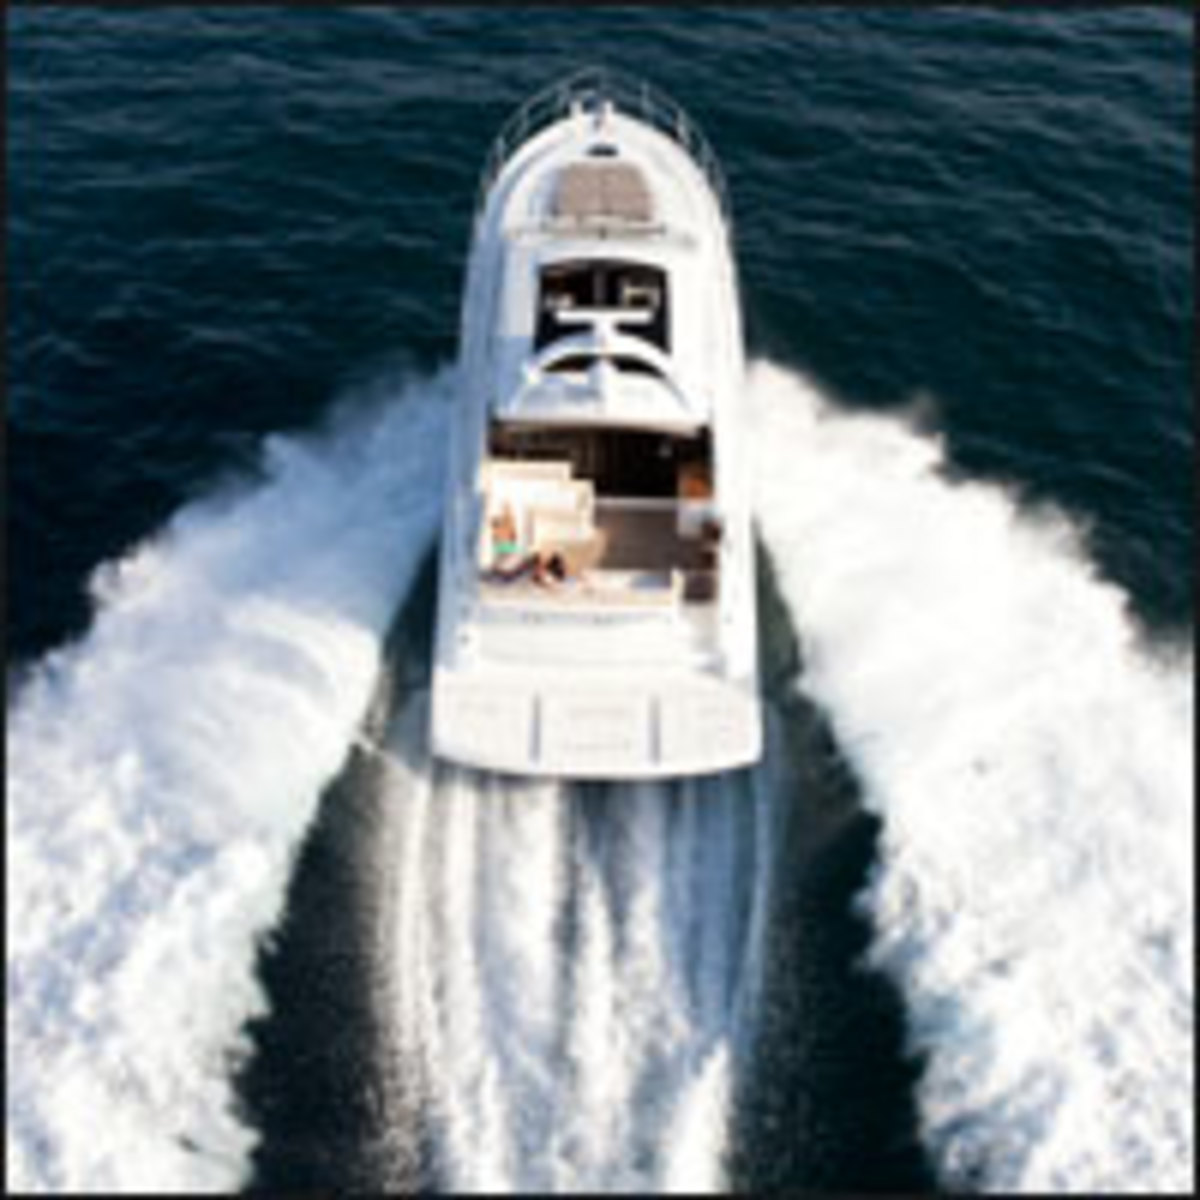 Click here to see more photos of the Sea Ray 510